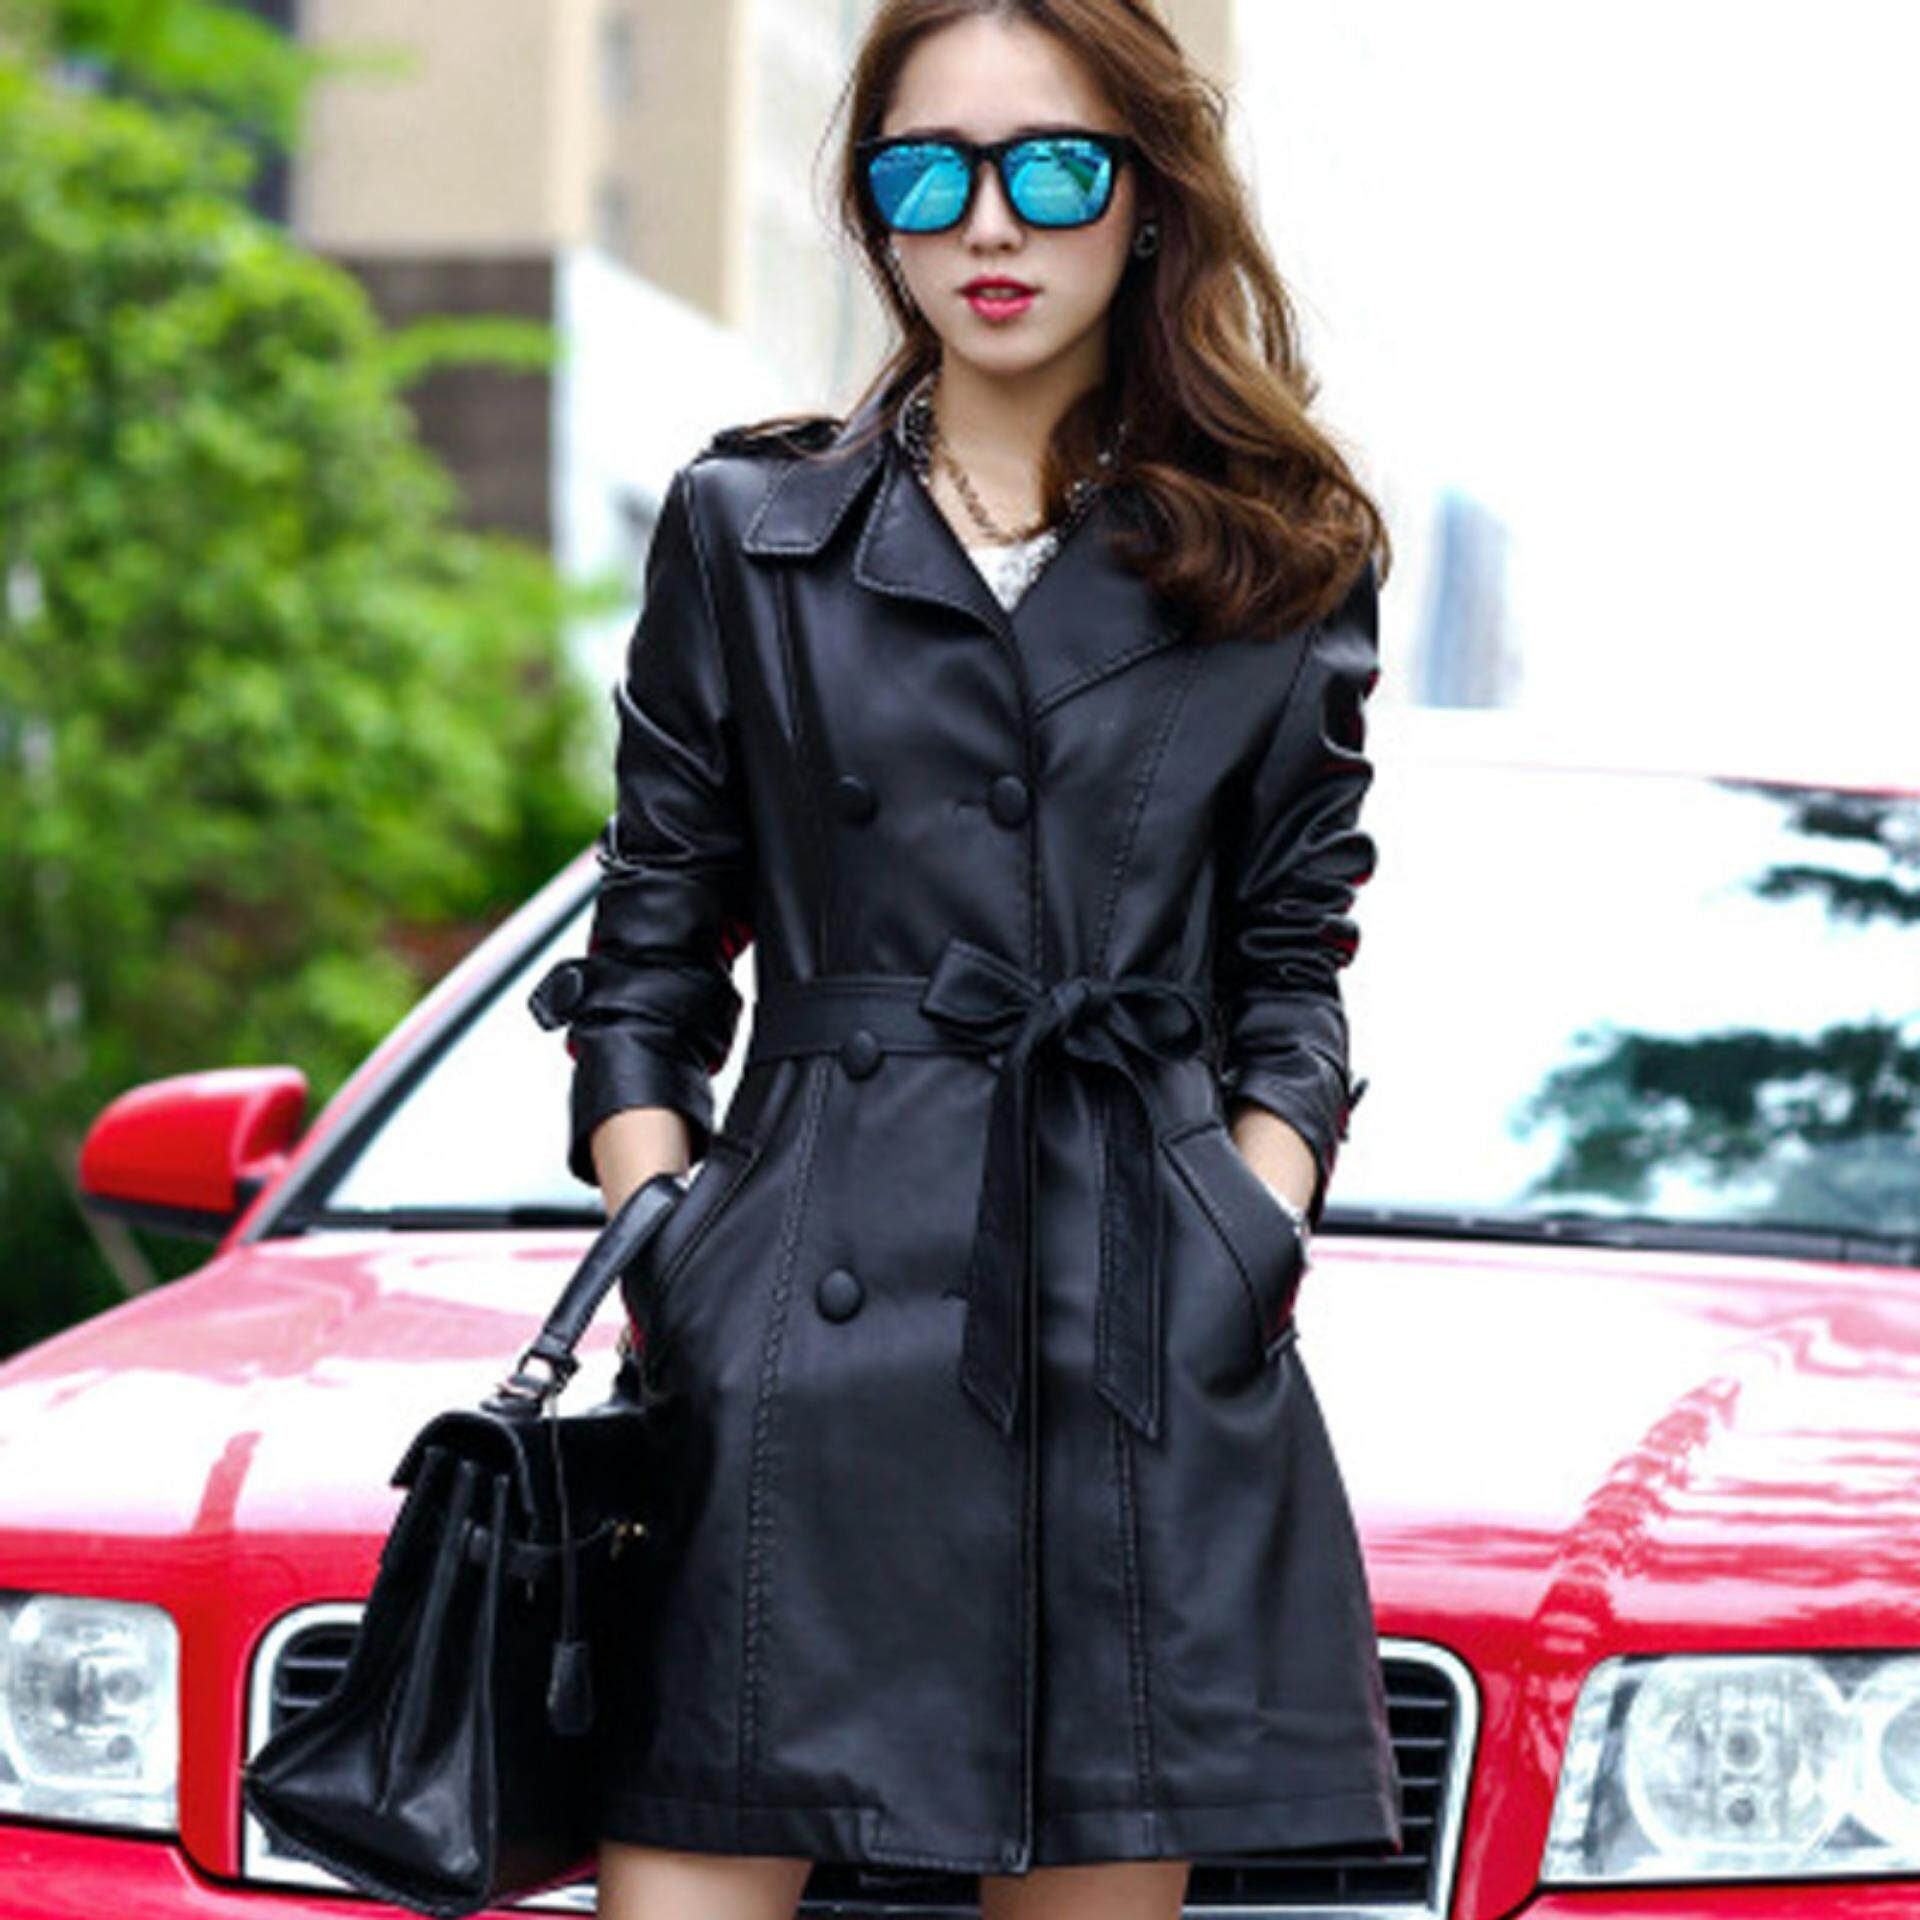 20a90073e05fa Long Leather Coat Female 2017 Autumn Women s High-grade PU Leather Jacket  and Solid color Fashion and Casual Windbreaker(black)